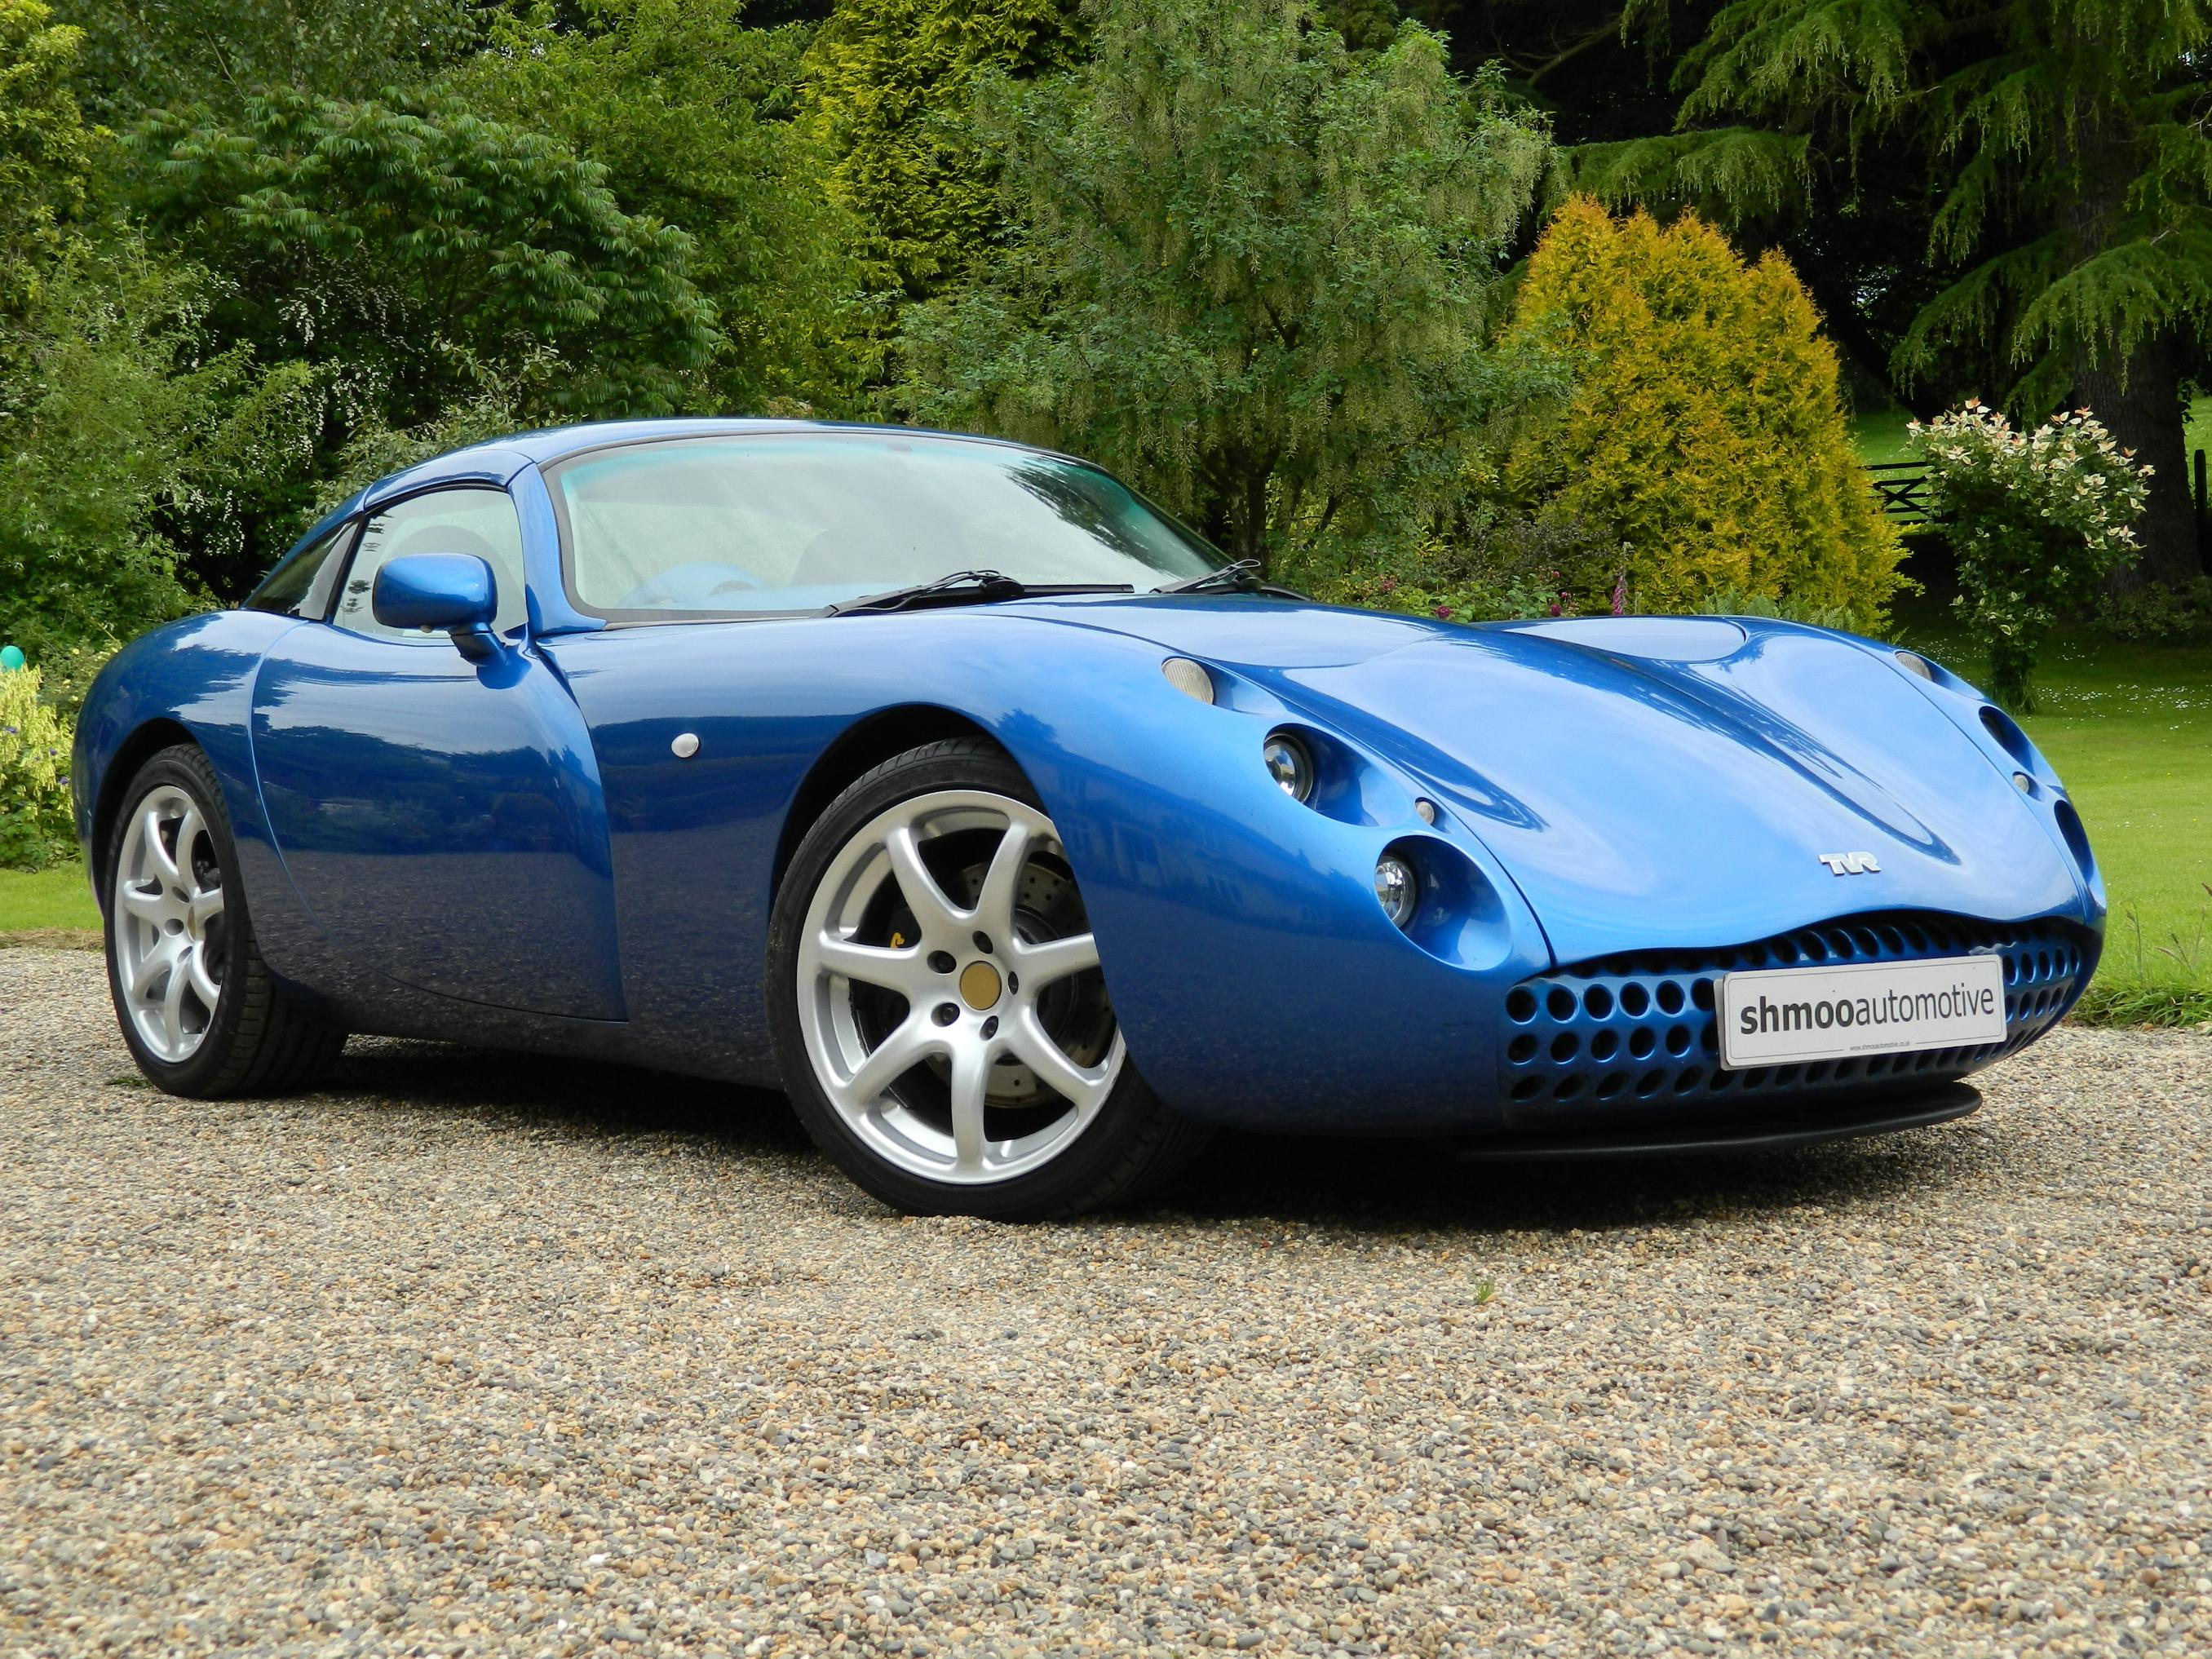 Tvr Tuscan Mk1 S Shmoo Automotive Shmoo Automotive